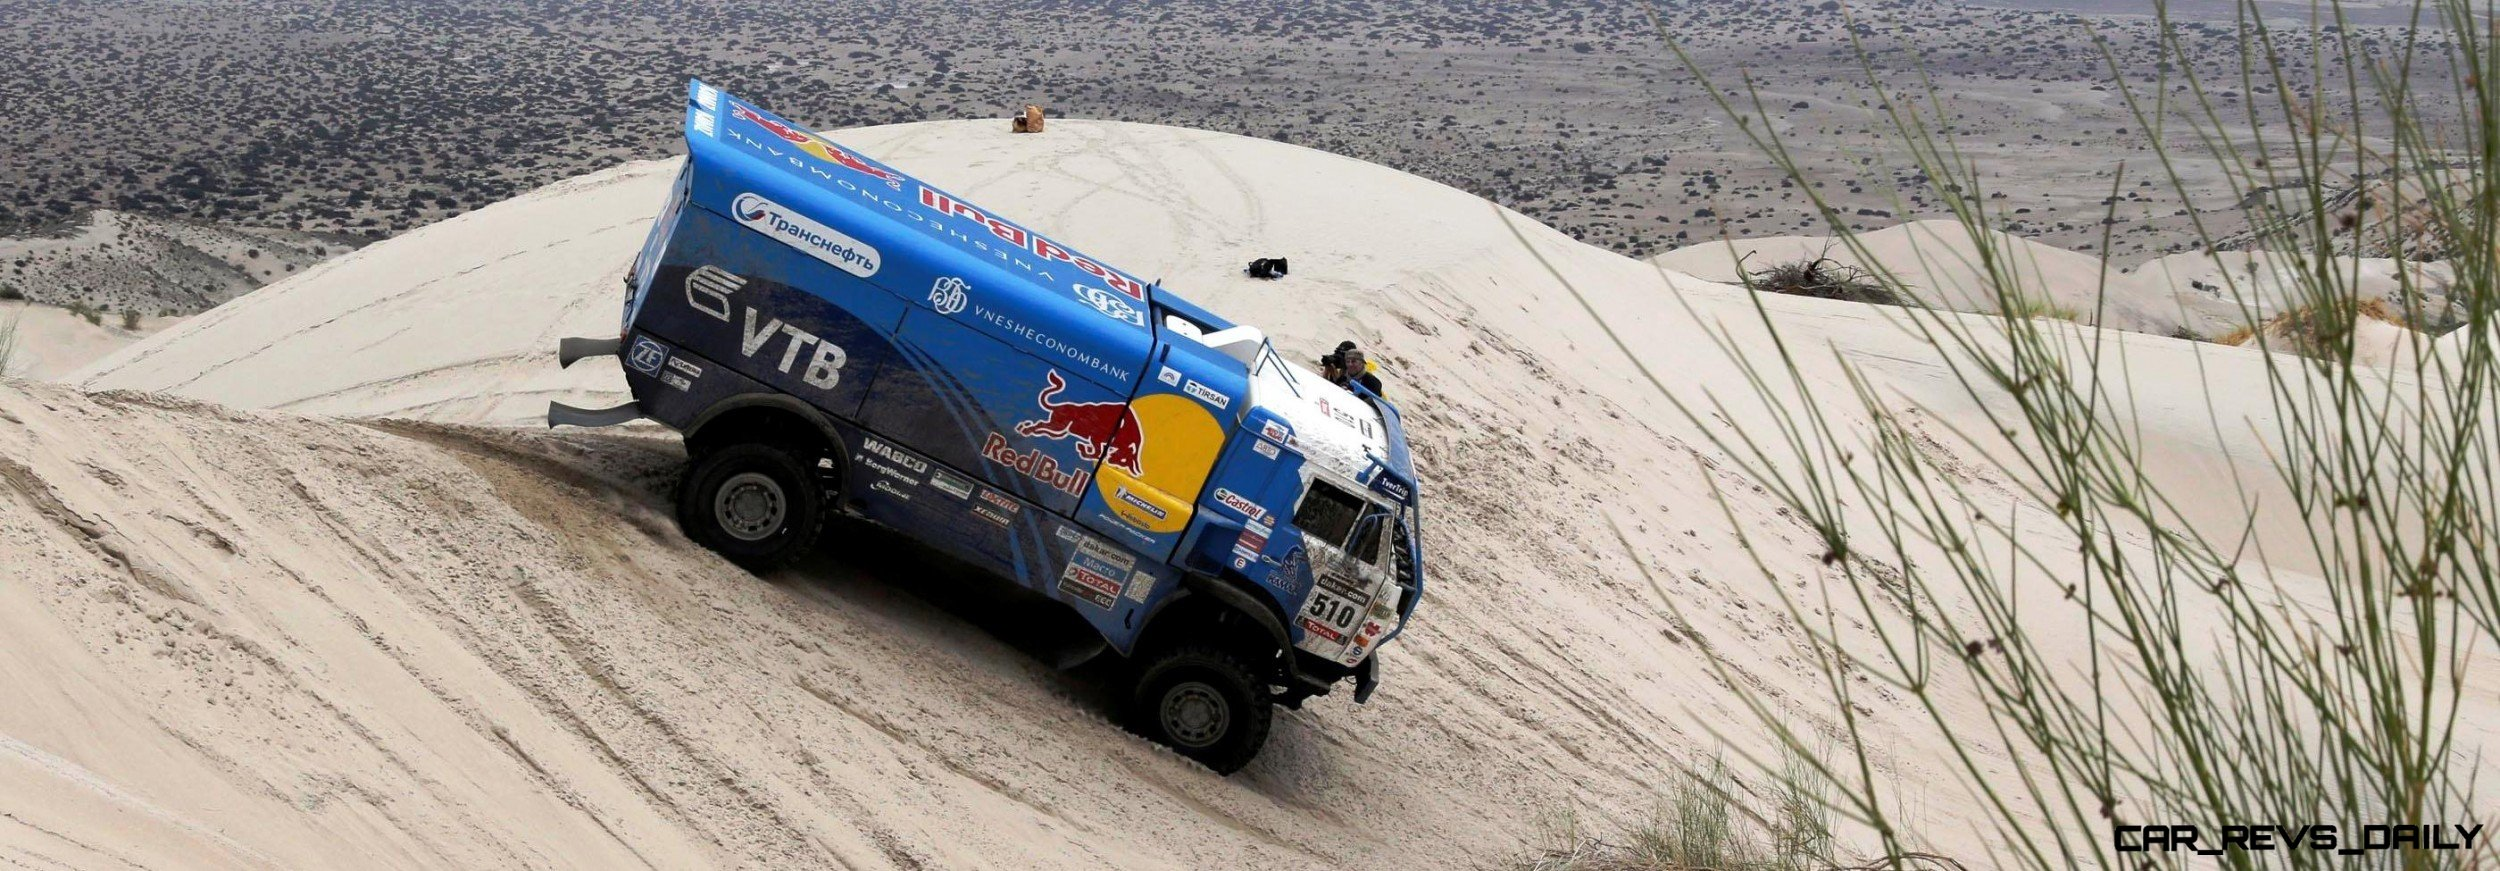 Russia's Andrey Karginov, co-pilots Igor Devyatin and Andrey Mokeev compete with their Kamaz truck during the 11th stage of the Dakar Rally 2013 from La Rioja to Fiambala January 16, 2013